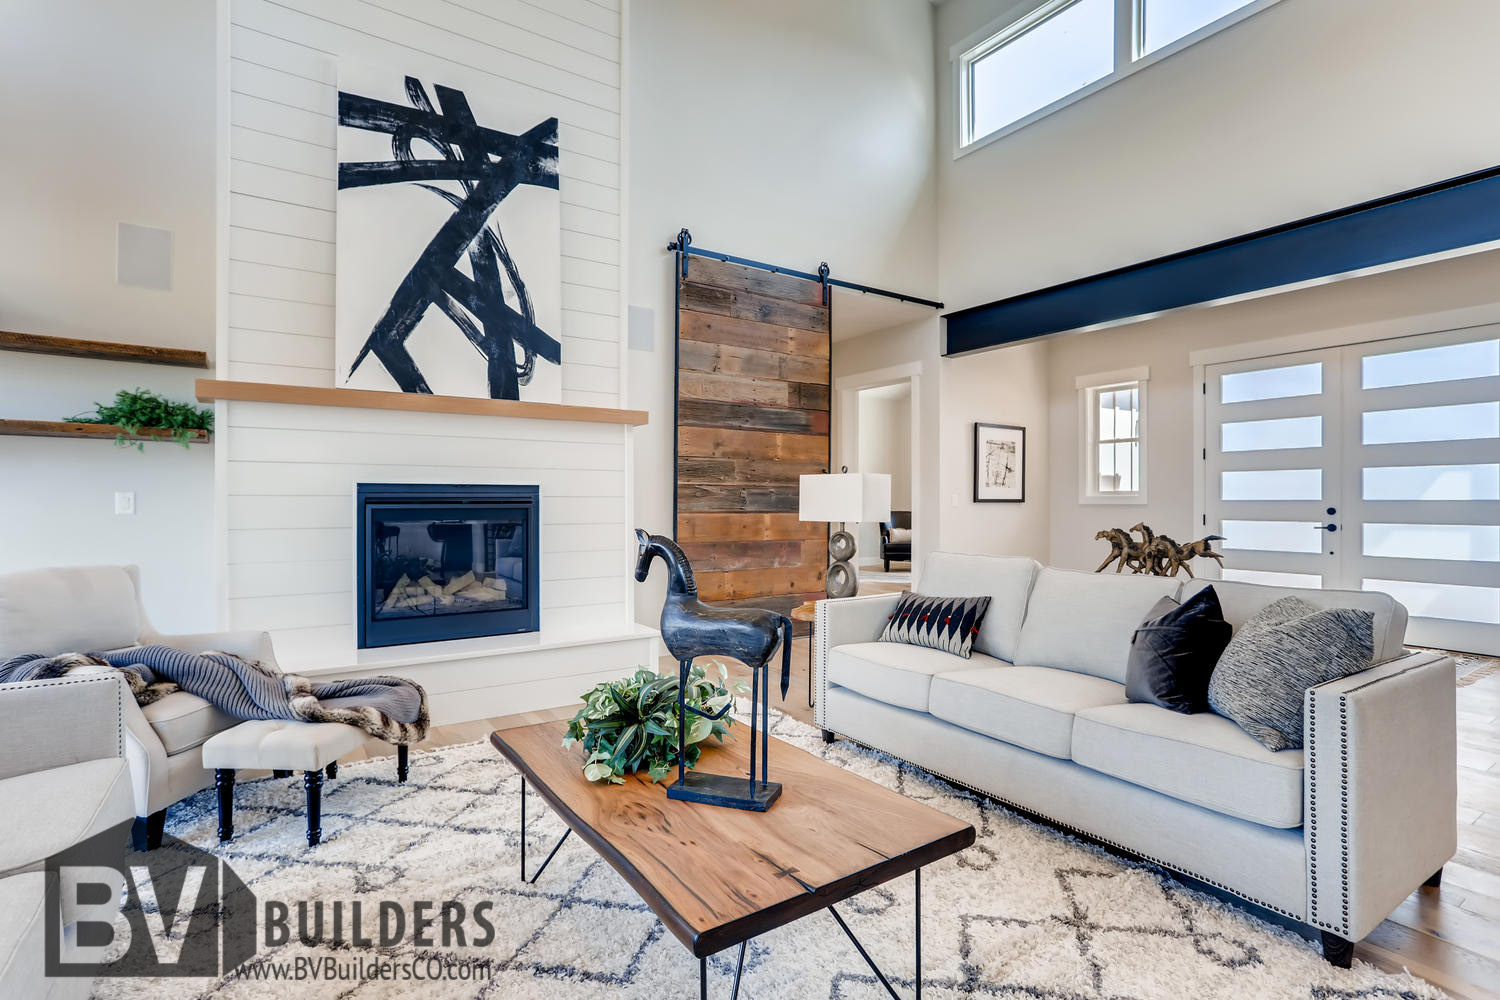 Modern farmhouse great room living room with exposed steel beams, reclaimed wood barn door and shiplap fireplace